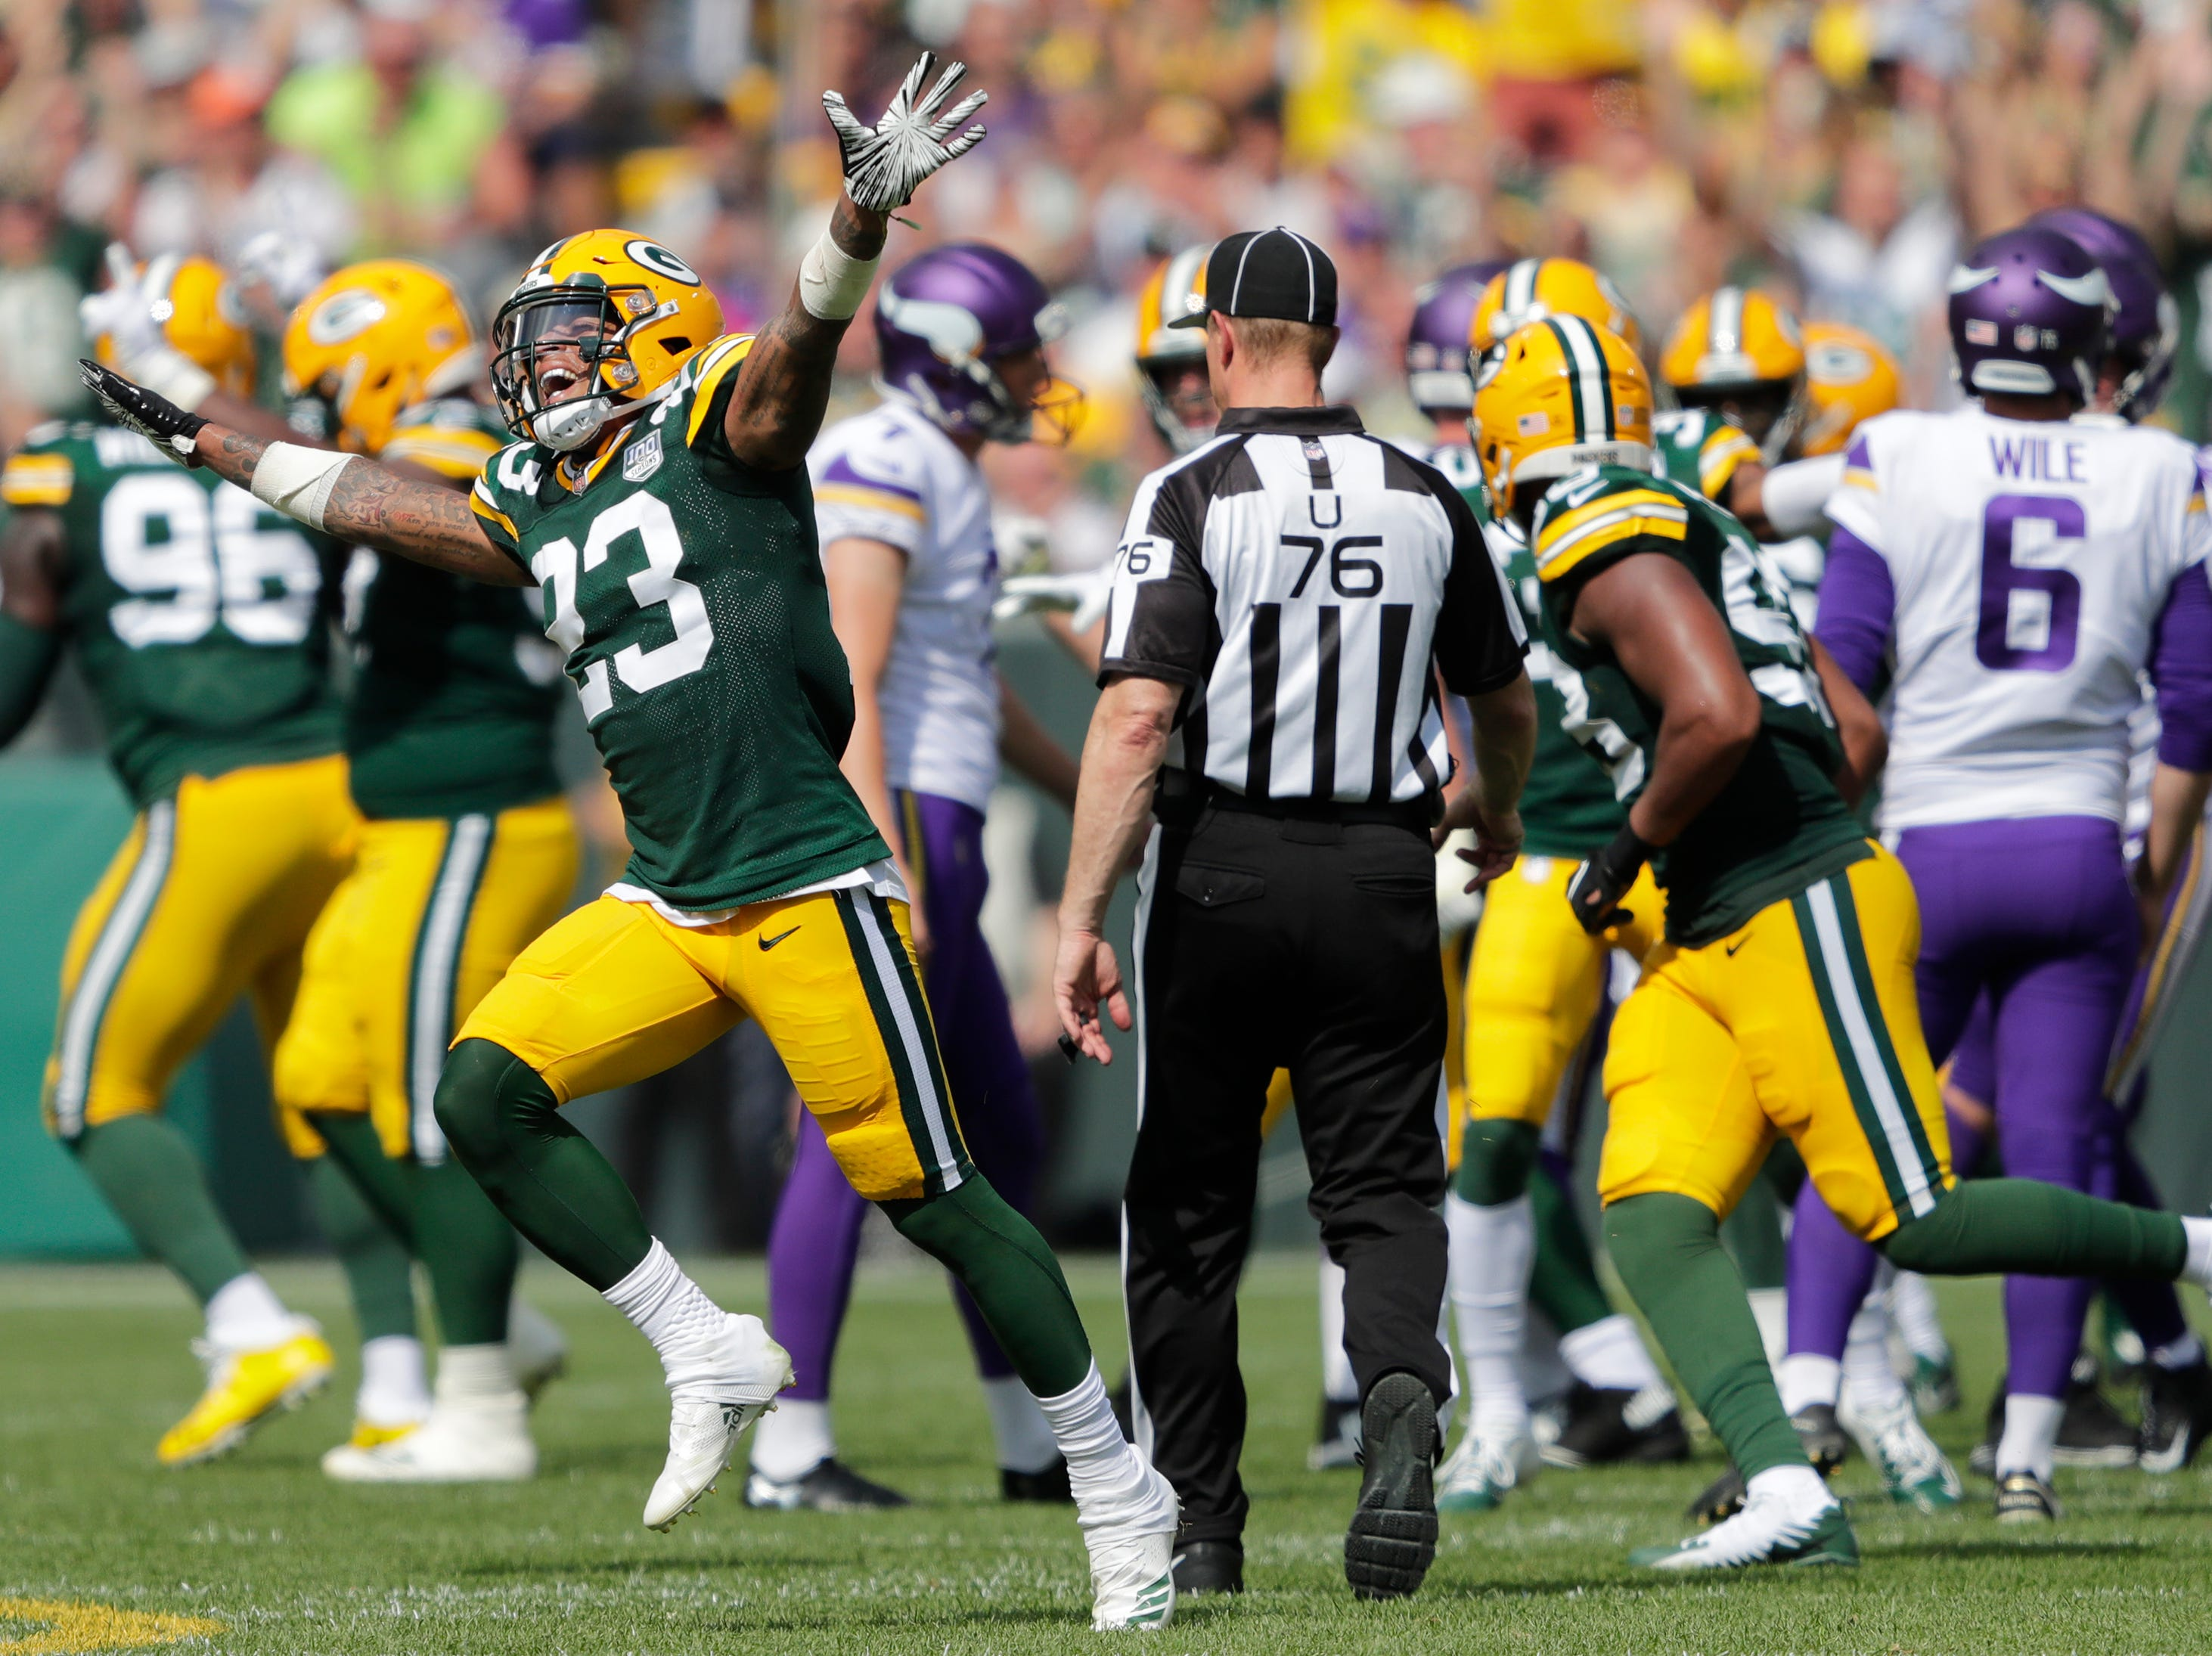 Green Bay Packers cornerback Jaire Alexander (23) reacts to a missed field goal attempt by the Minnesota Vikings late in the second quarter during their football game Sunday, Sept. 16, 2018, at Lambeau Field in Green Bay, Wis. Dan Powers/USA TODAY NETWORK-Wisconsin